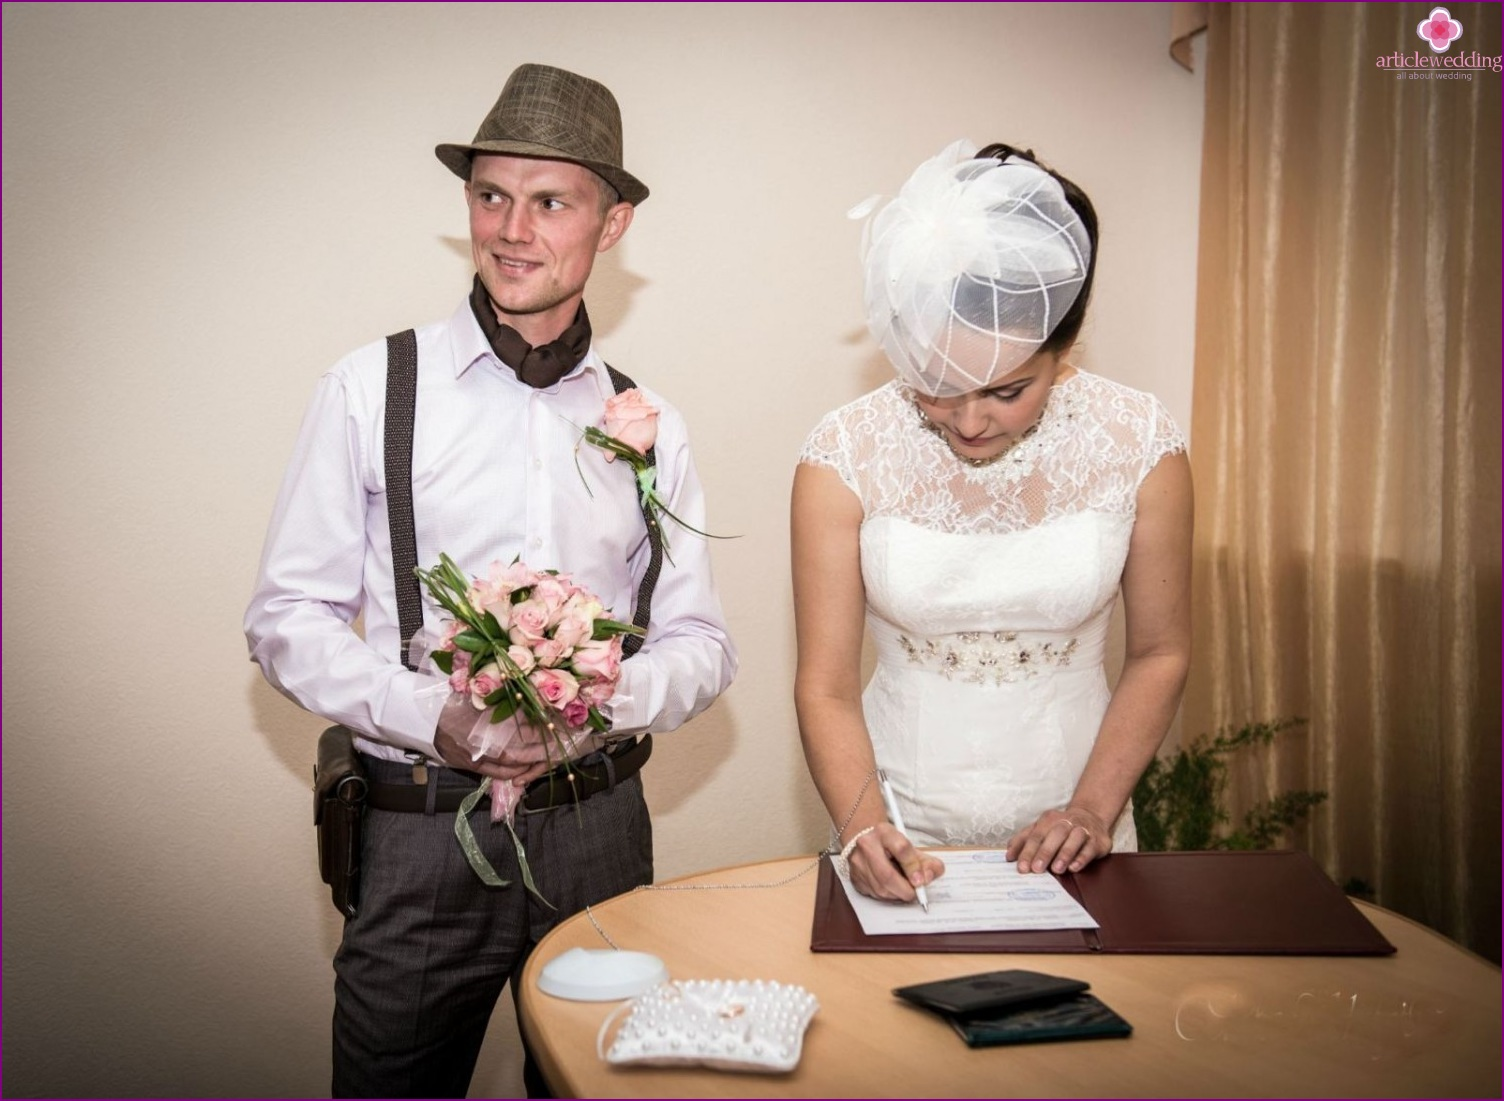 Suspenders and a hat in the image of the groom